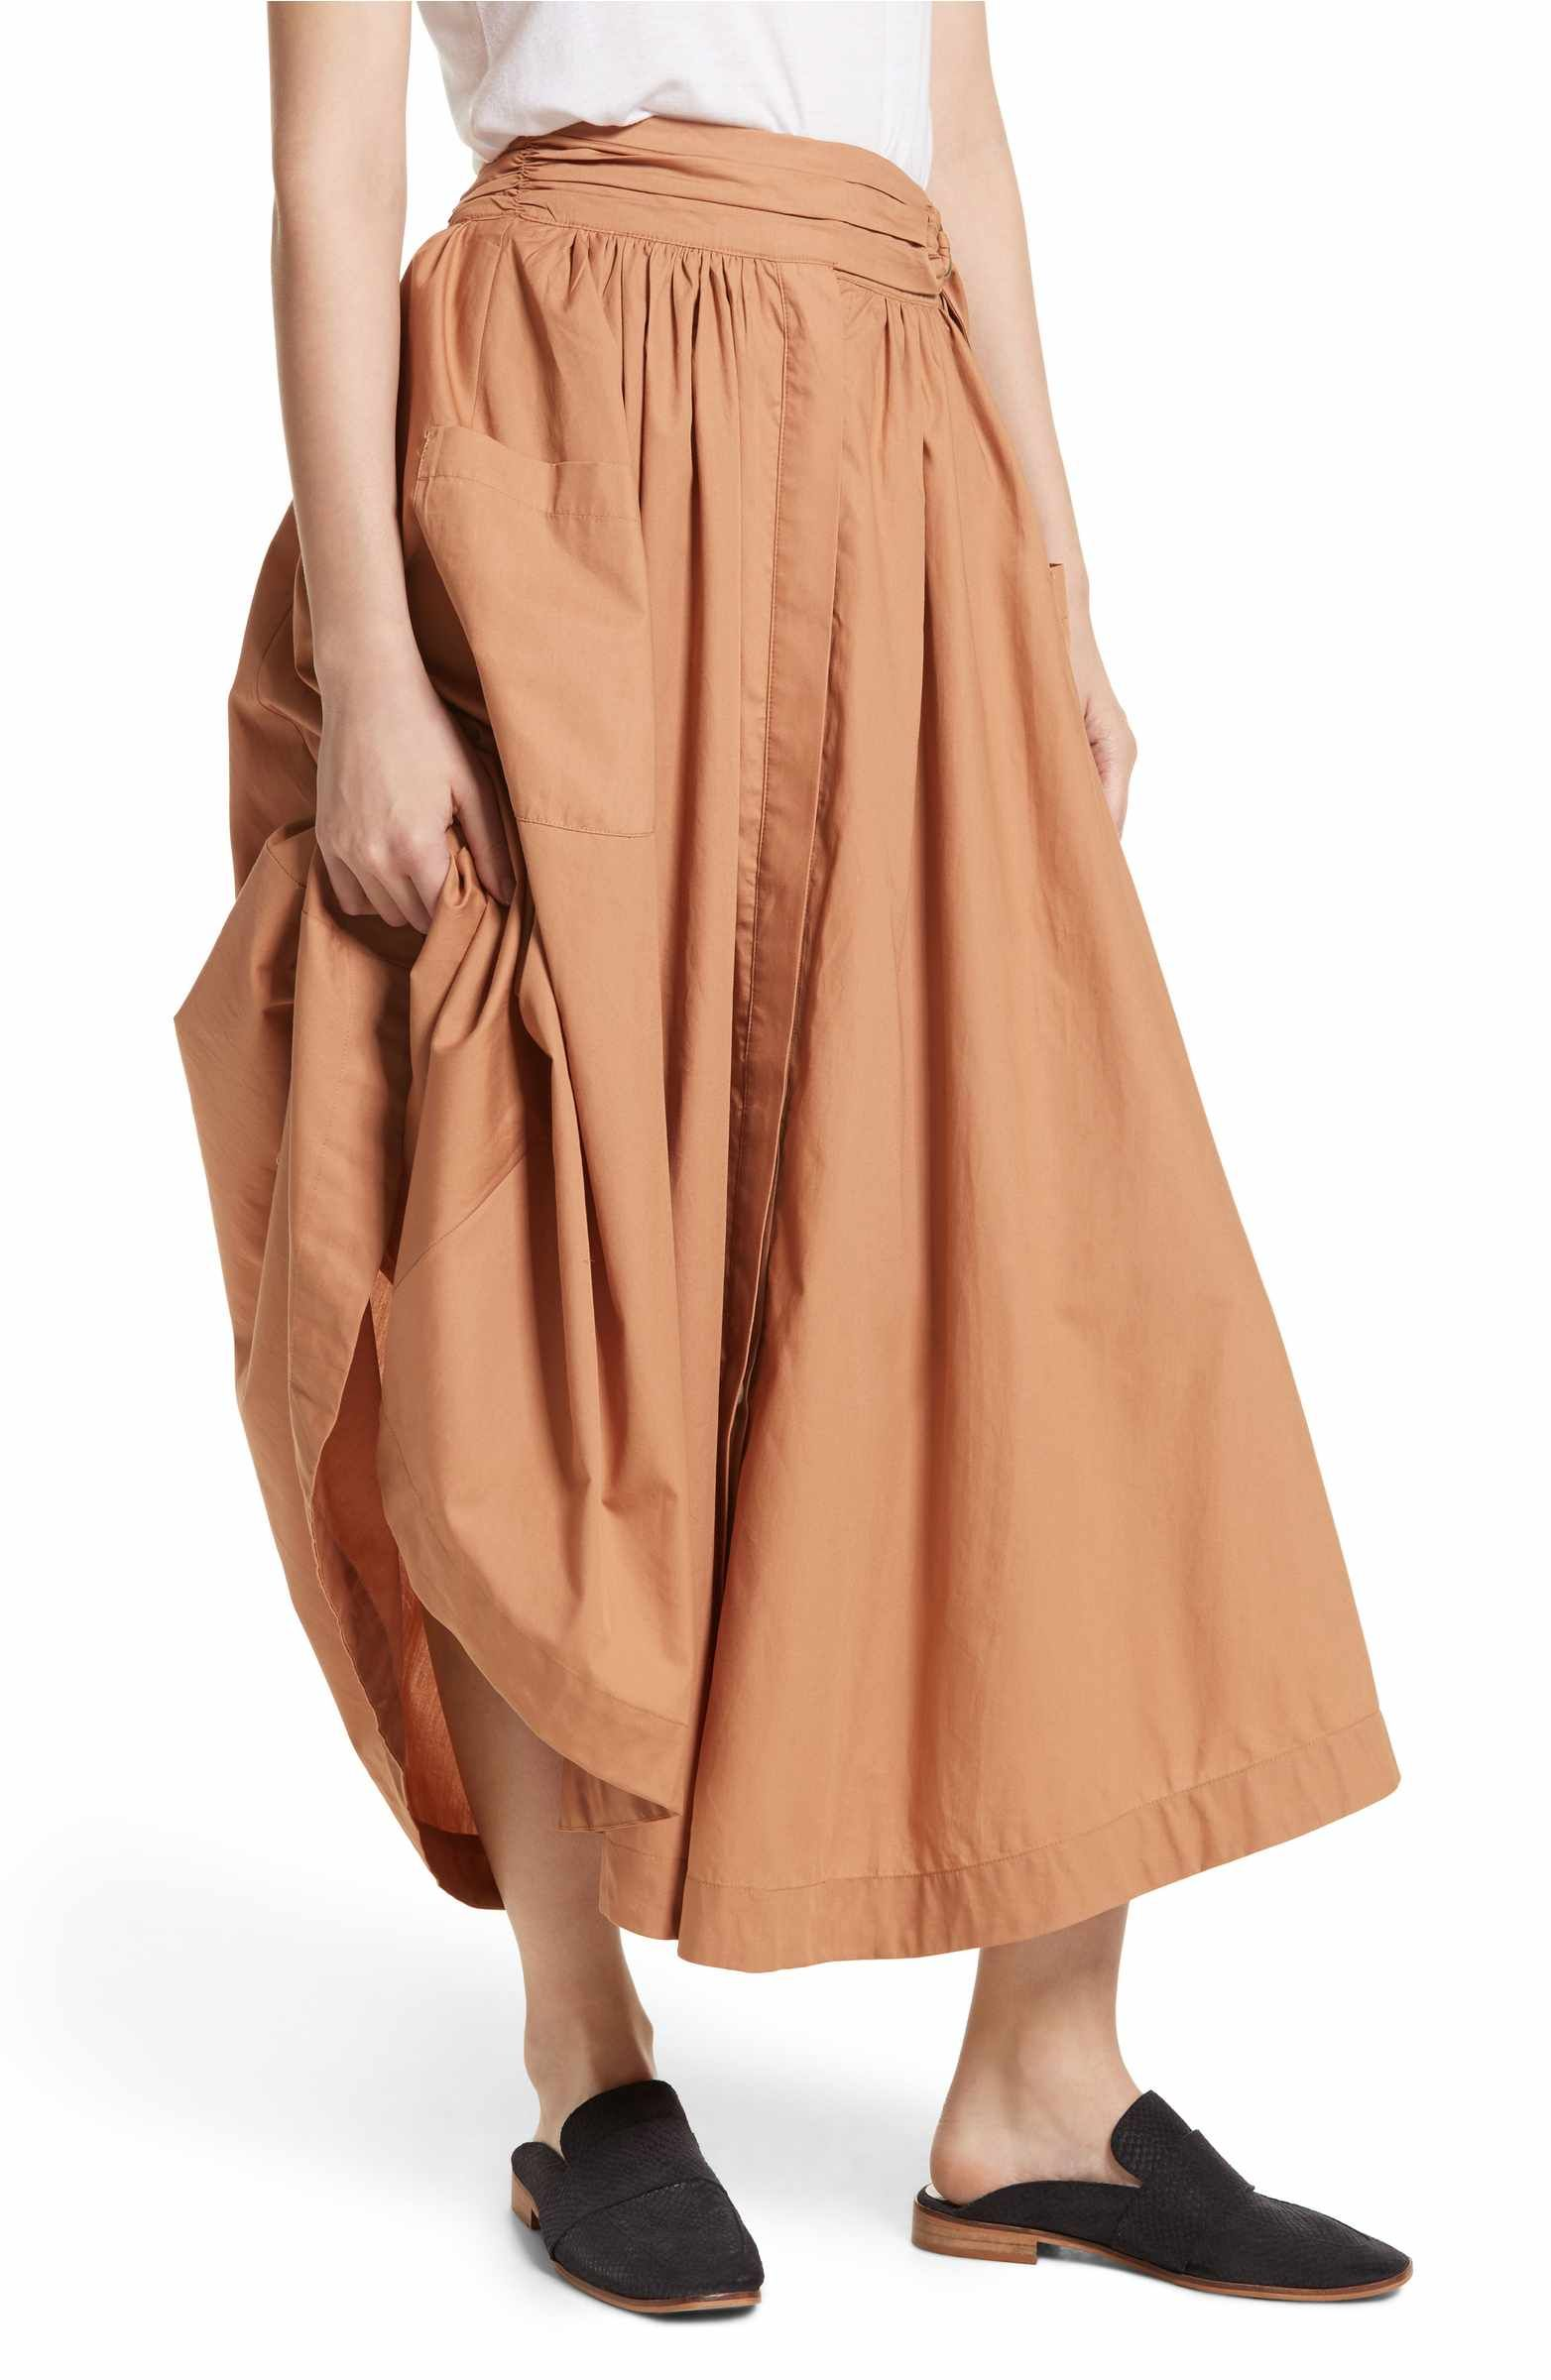 dd91bfacd2 Main Image - Free People Dream of Me Midi Skirt